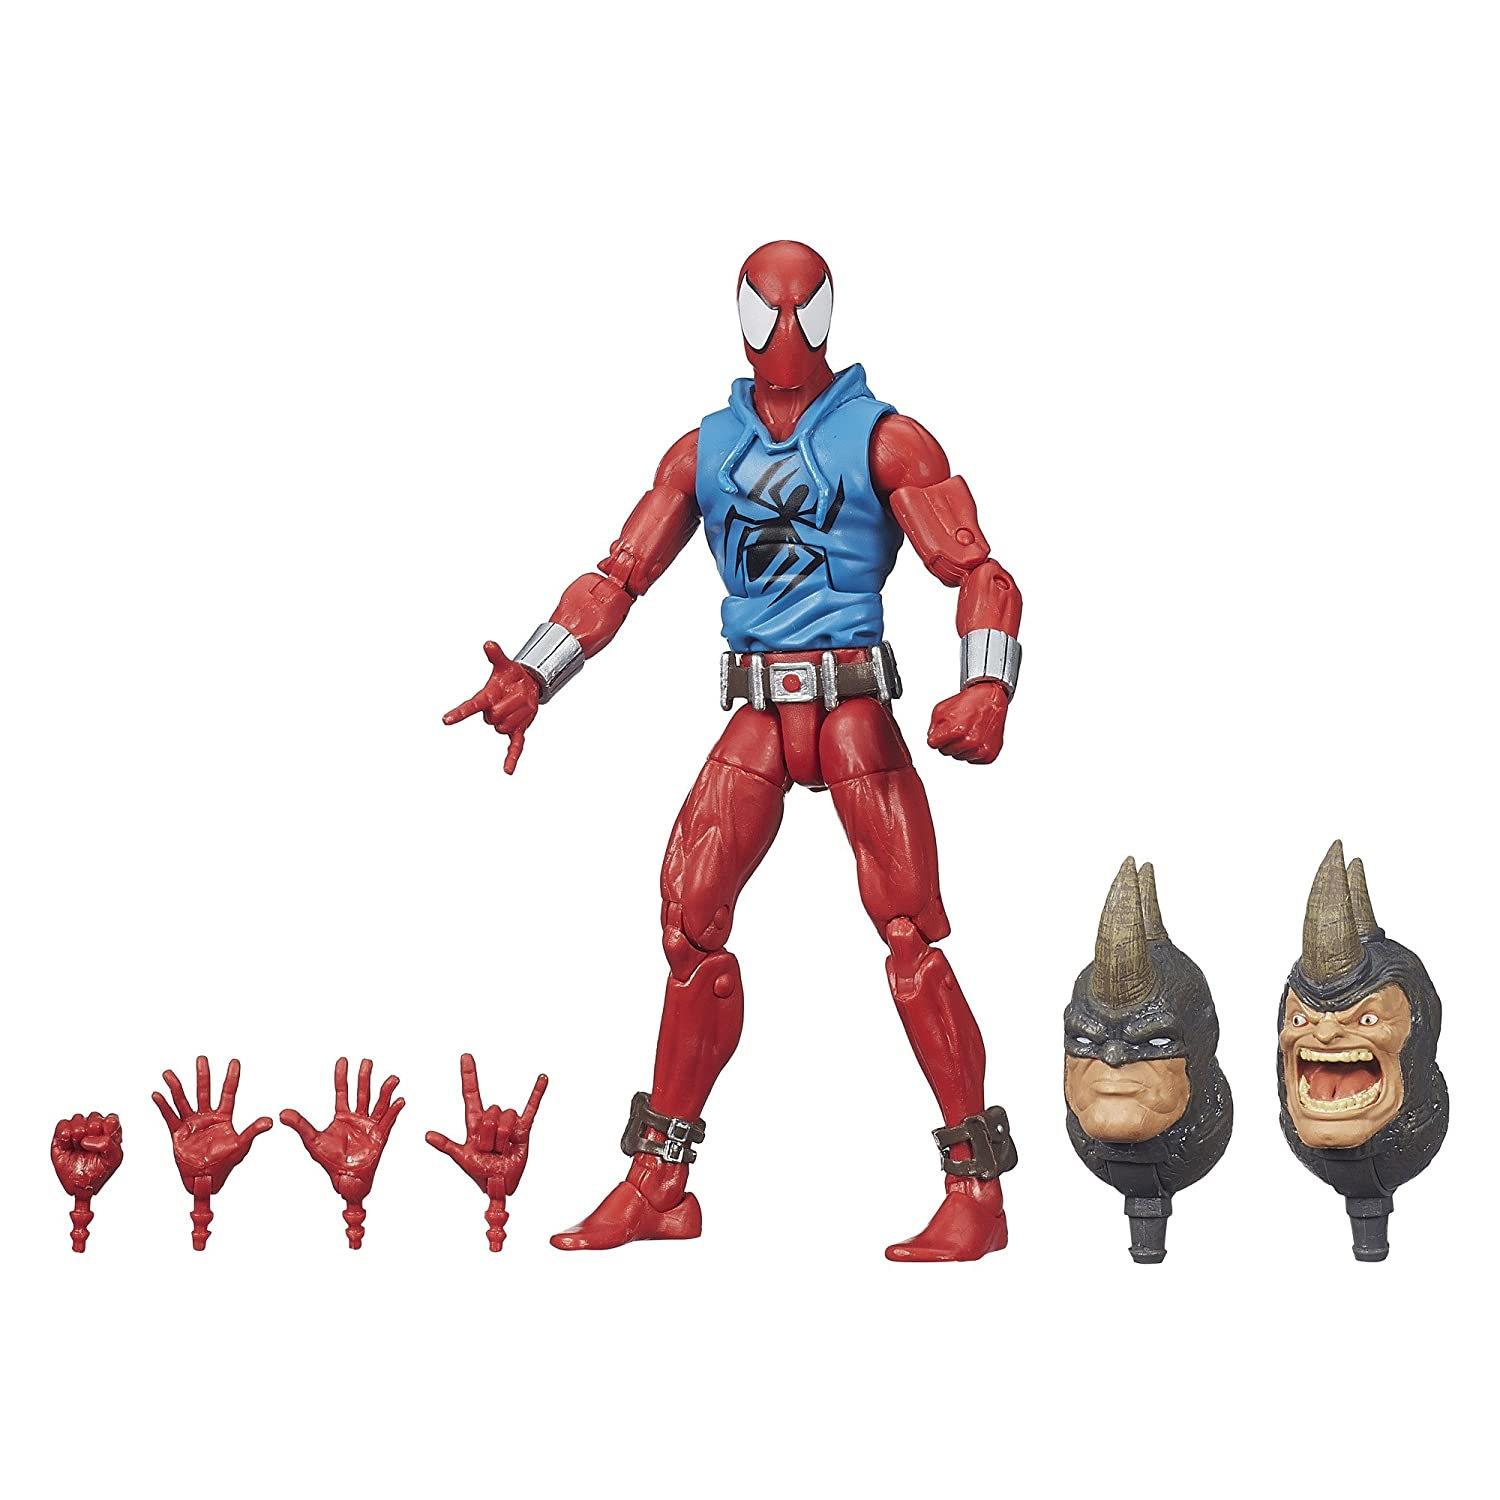 Marvel Legends 2015 Spider-Man Infinite Serie 2 Actionfiguren: Scarlet Spider als Weihnachtsgeschenk